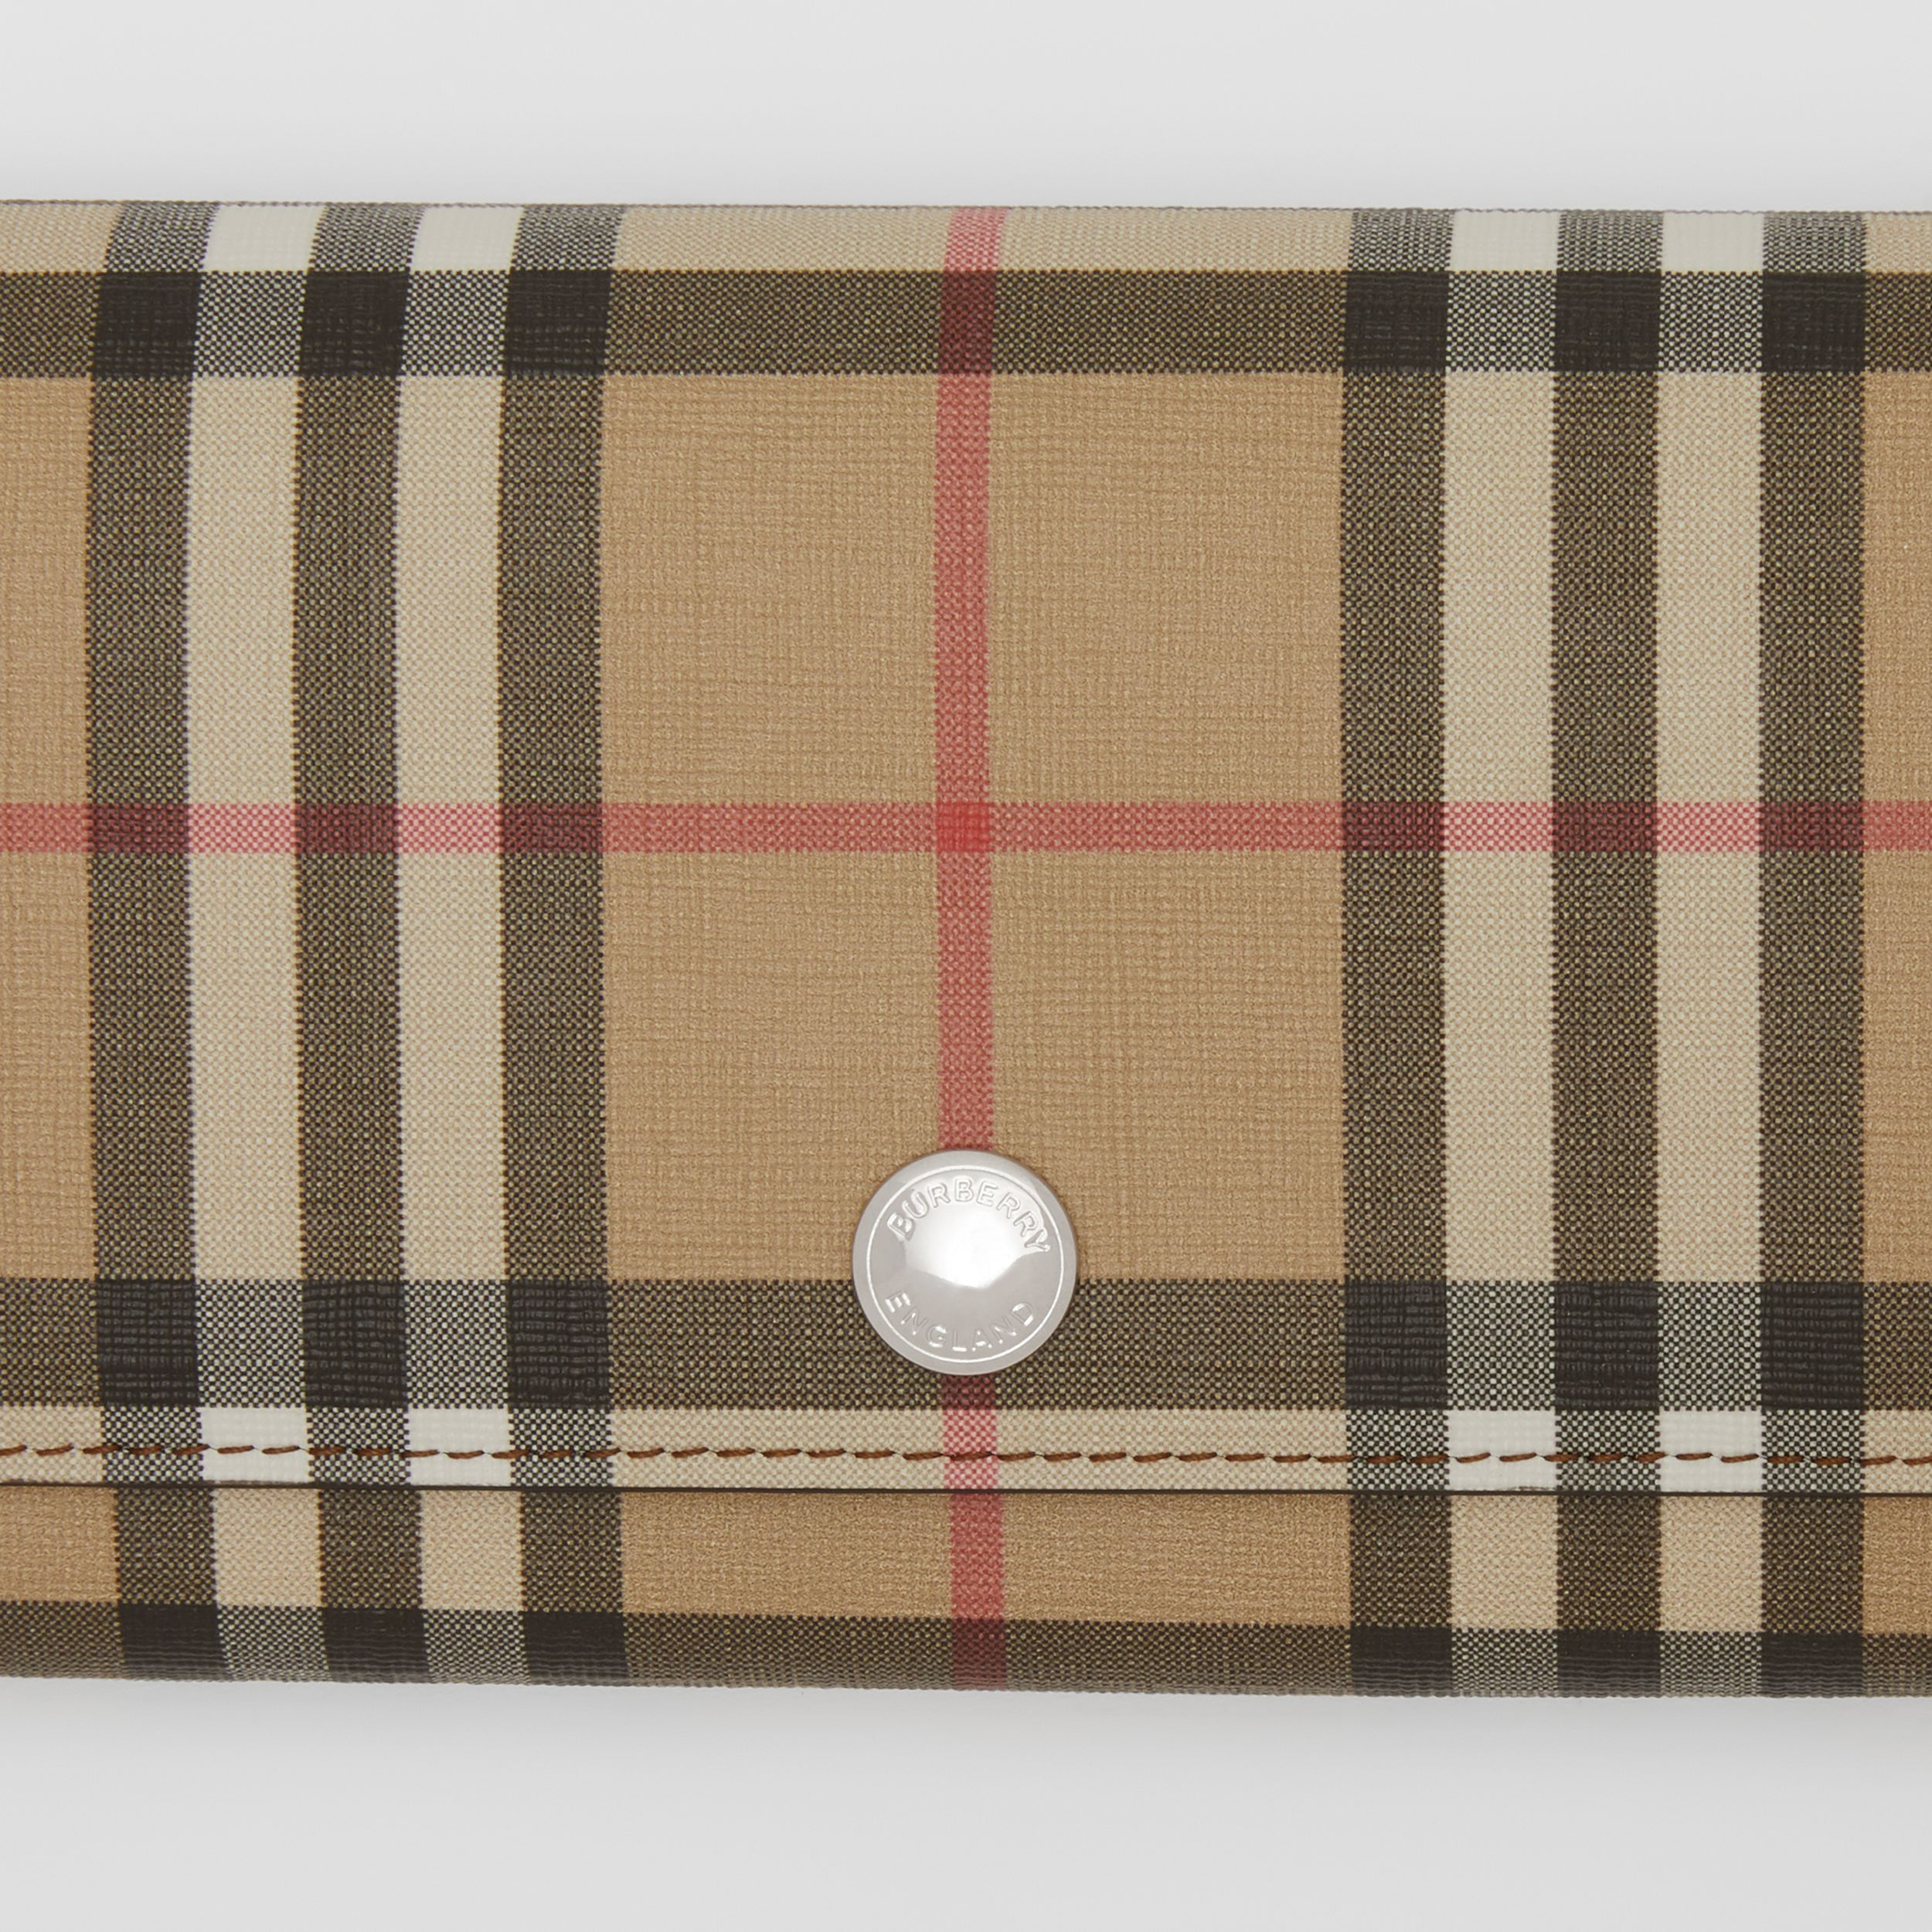 Vintage Check E-canvas Continental Wallet in Malt Brown - Women | Burberry - 2